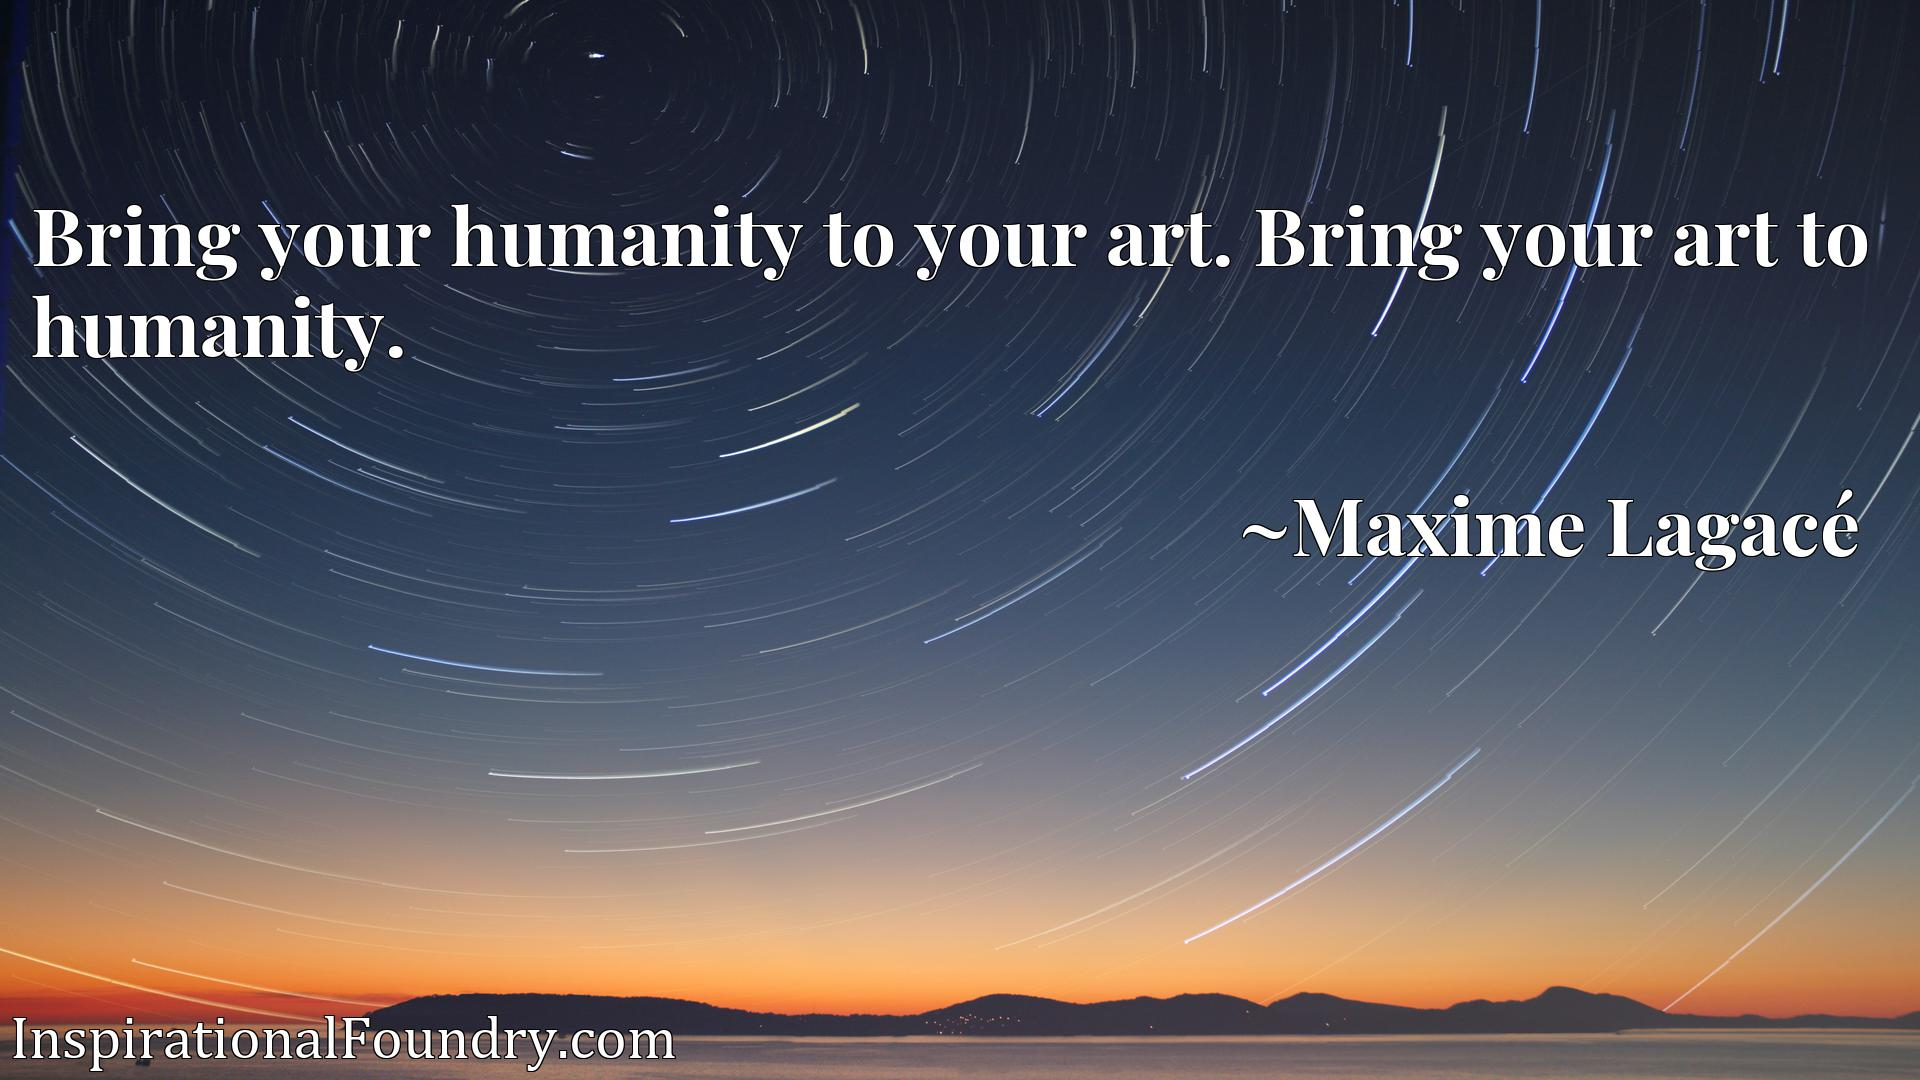 Bring your humanity to your art. Bring your art to humanity.